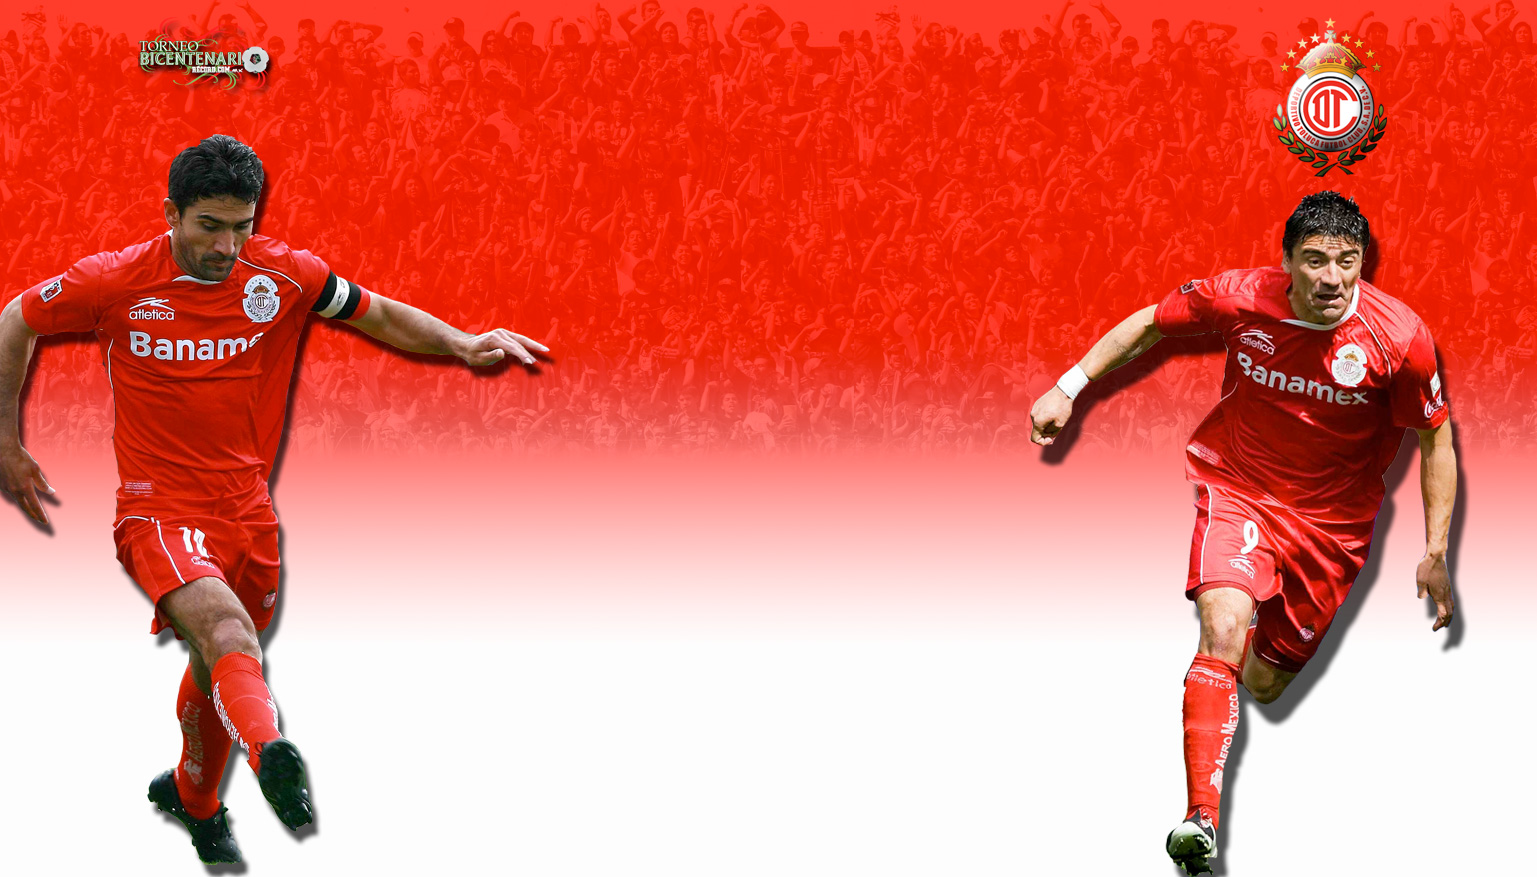 club toluca wallpaper - photo #47